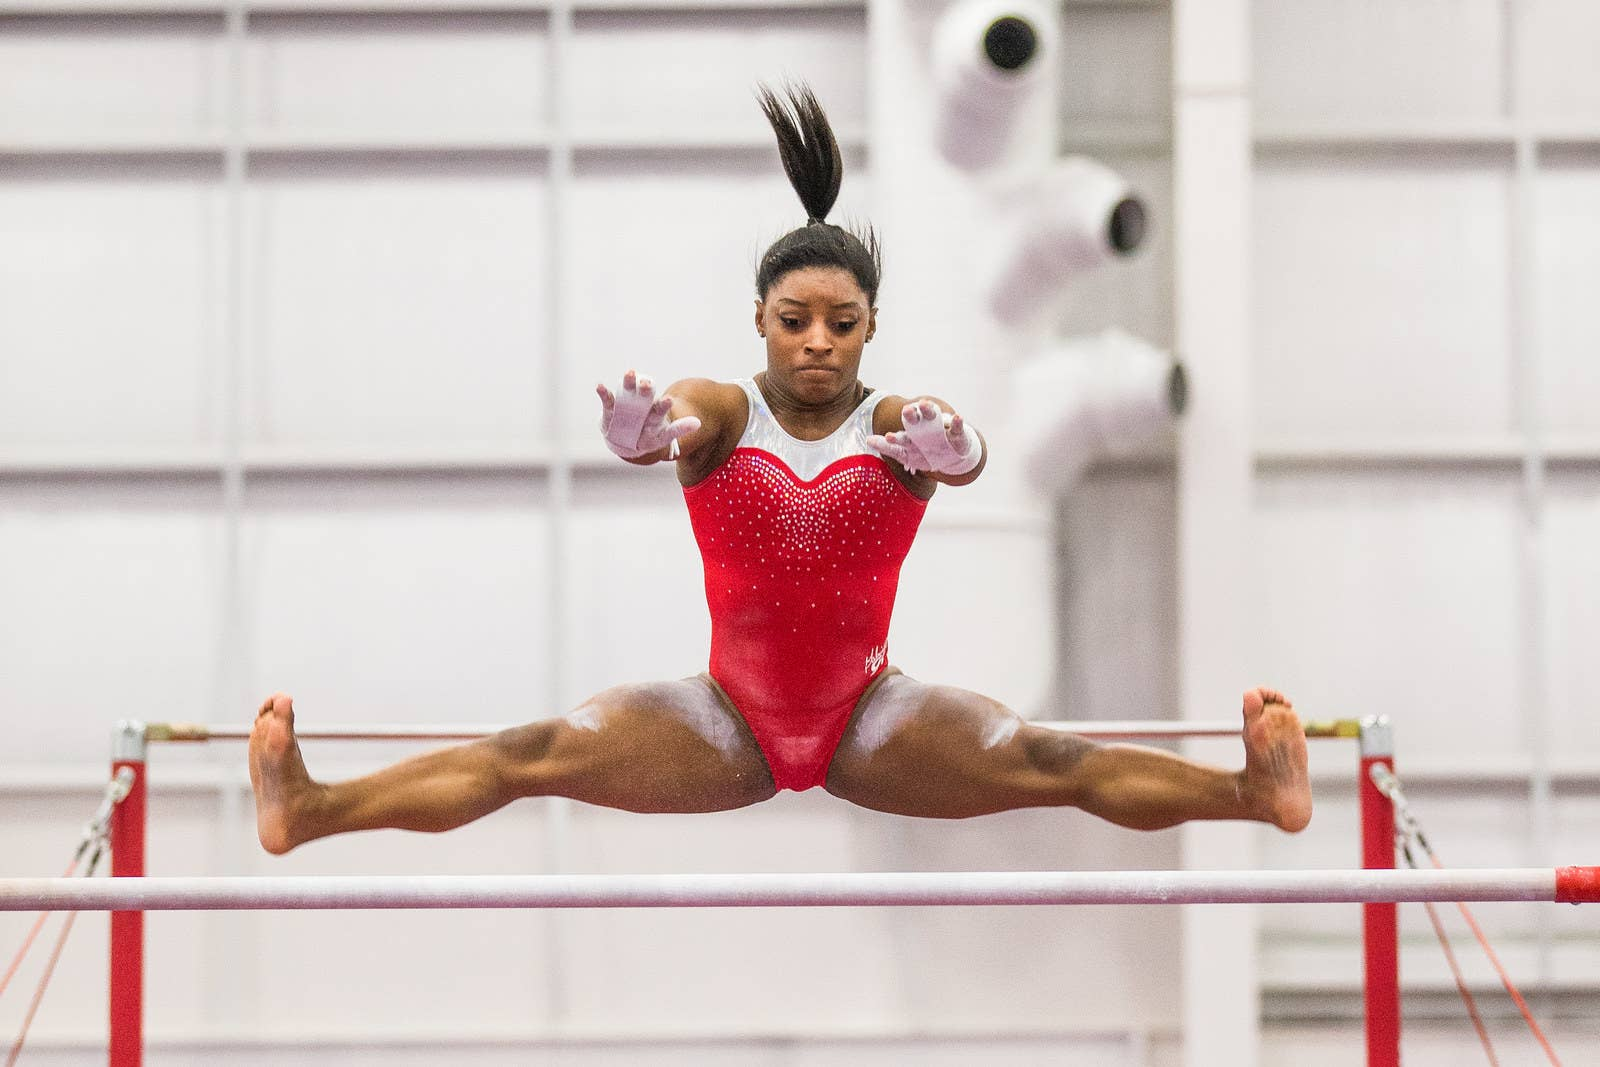 Winwin gymnastics - Biles At Her Family Gym World Champions Centre In Spring Texas On Jan